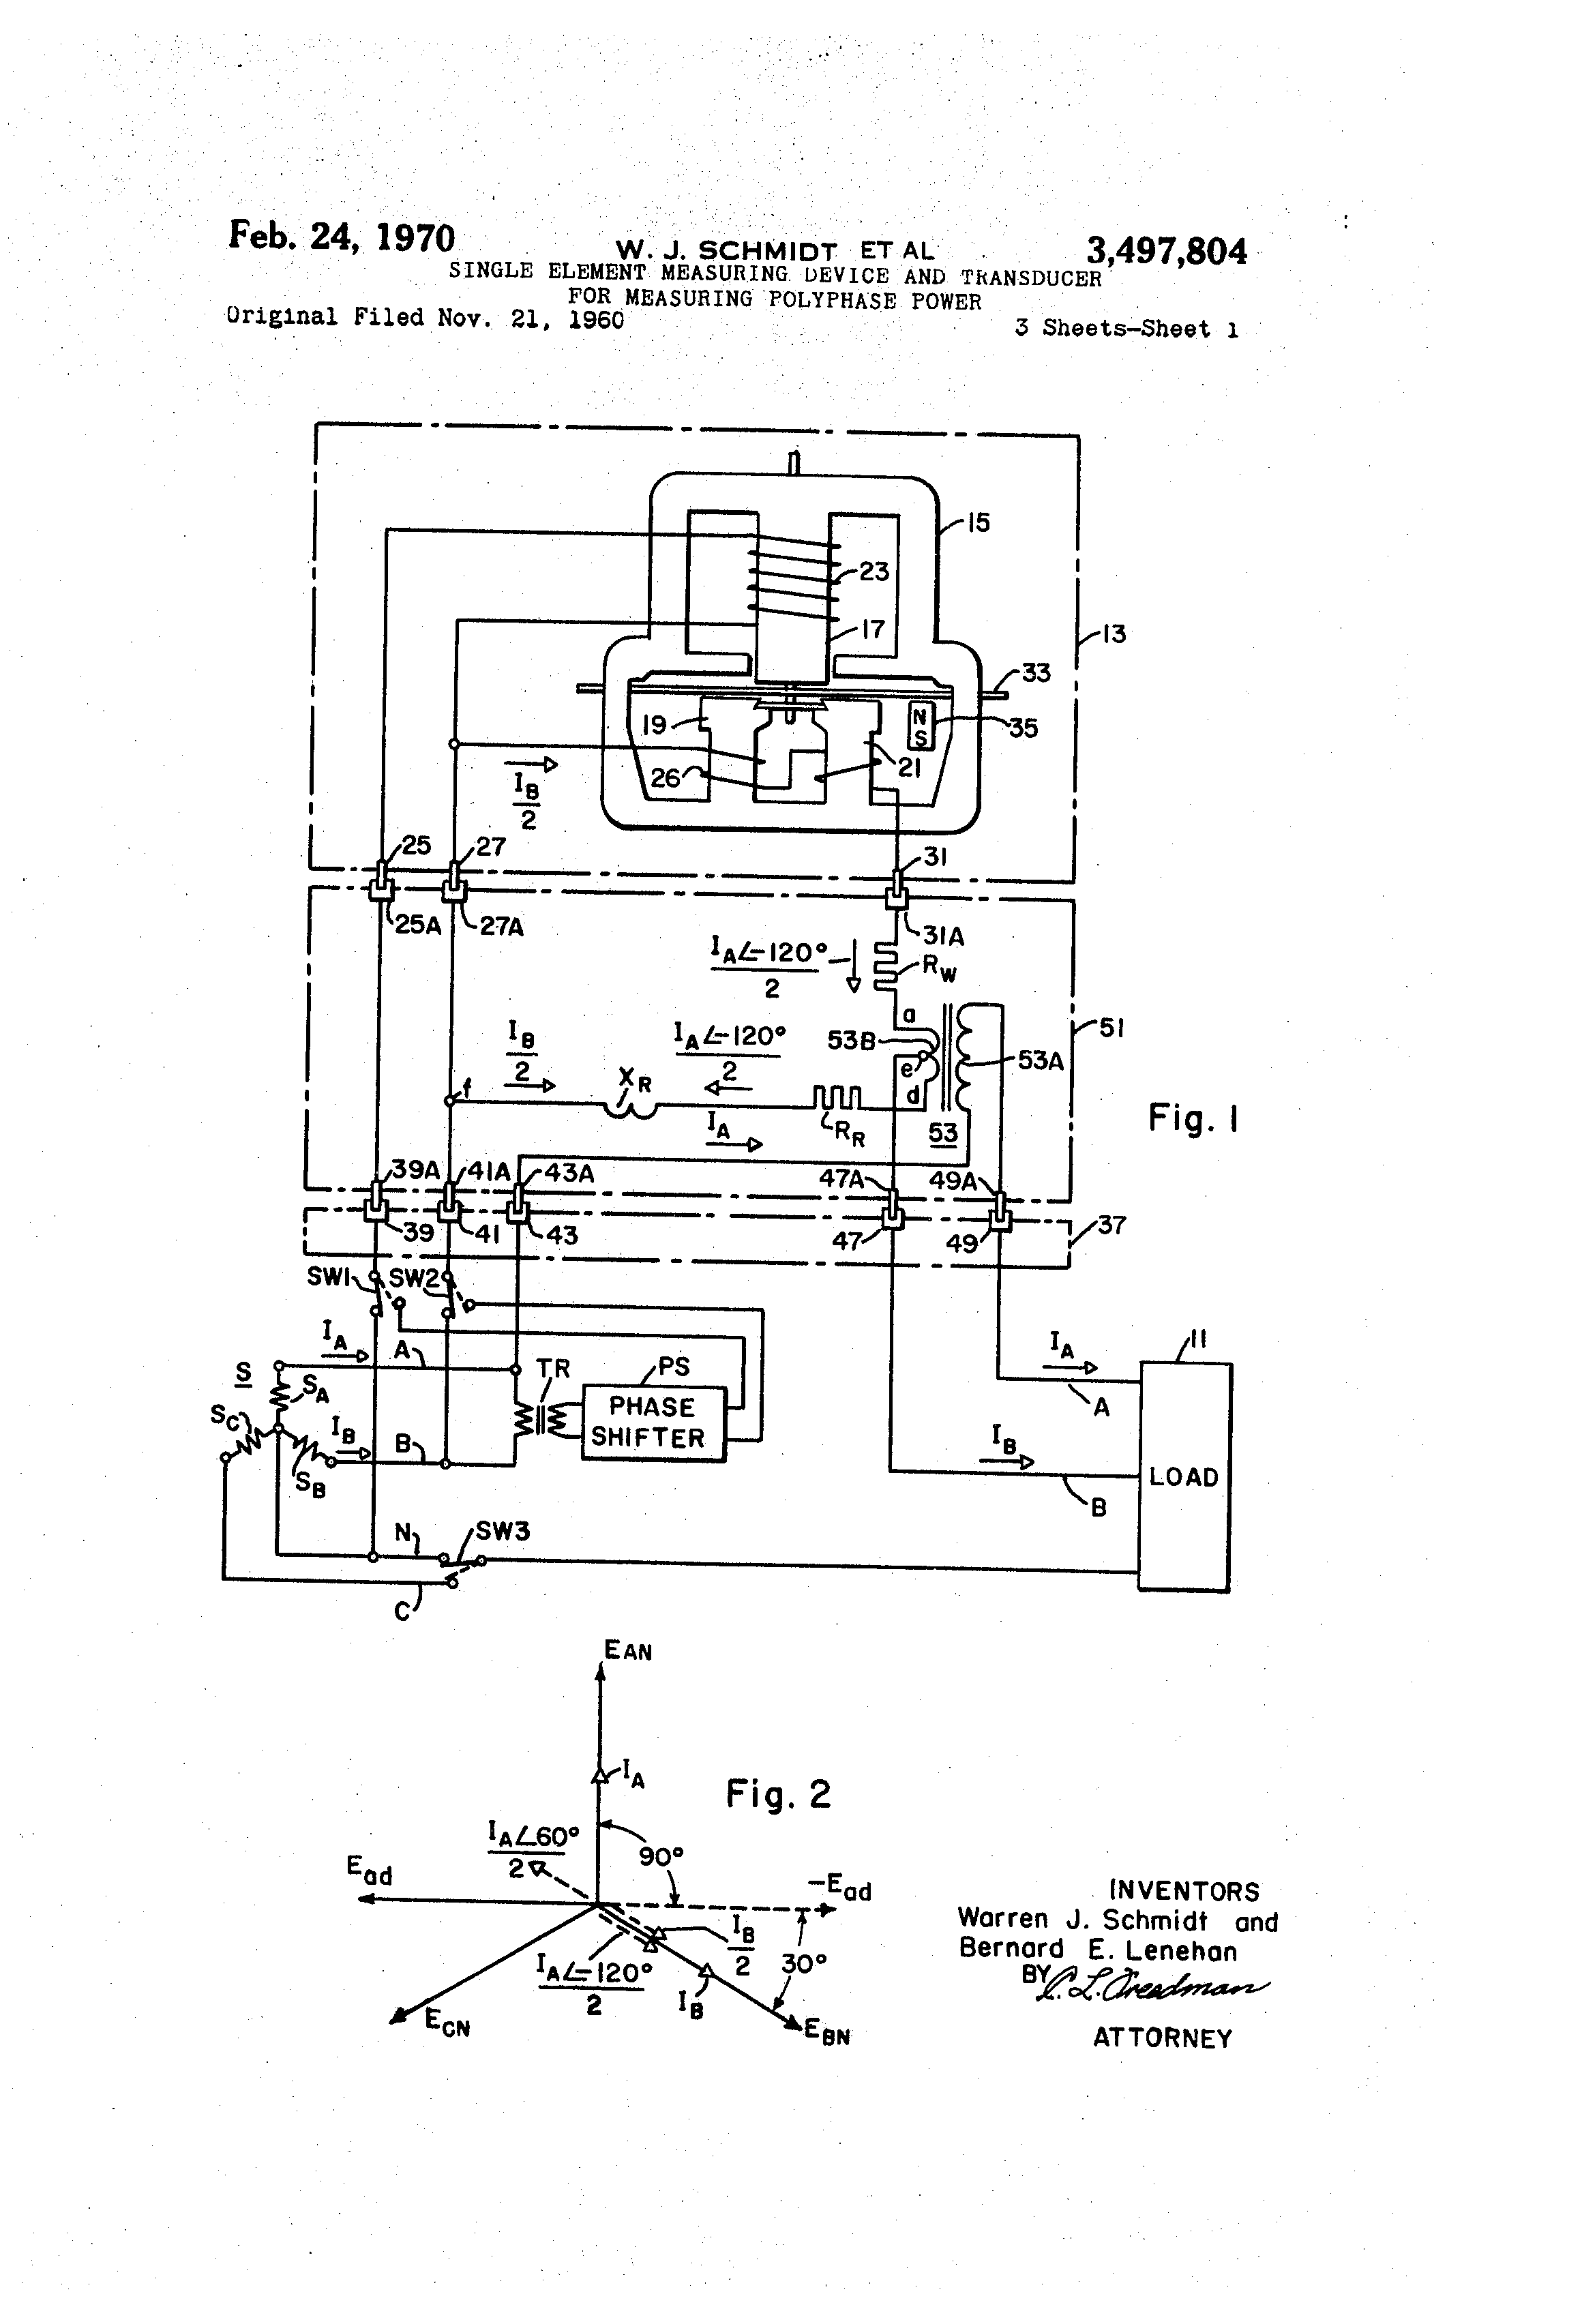 Patent Us3497804 Single Element Measuring Device And Transducer The Wiring Circuit Diagram With Singlephase Watthour Meter Drawing